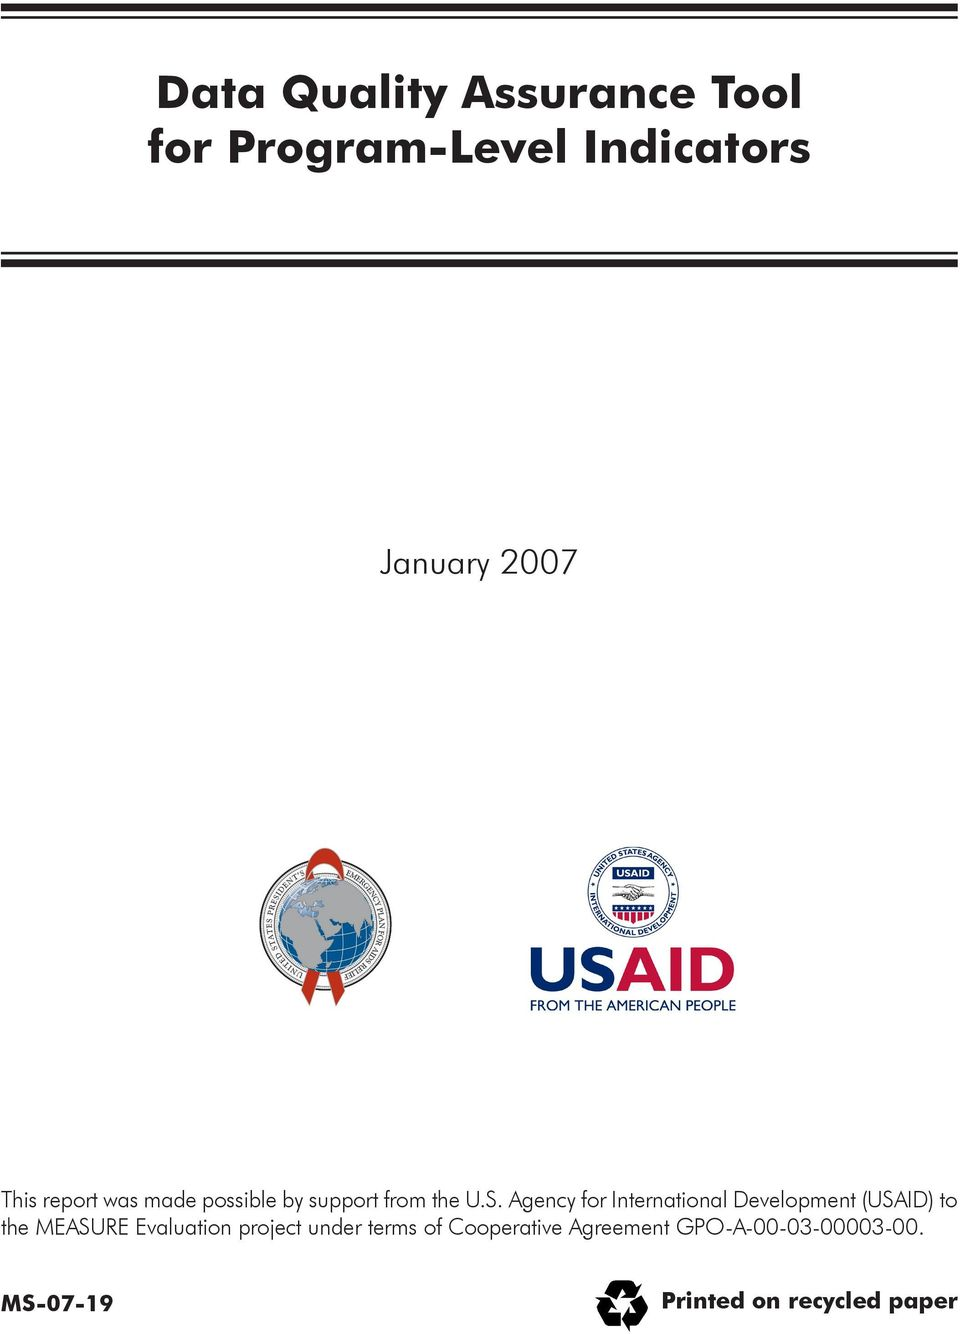 Agency for International Development (USAID) to the MEASURE Evaluation